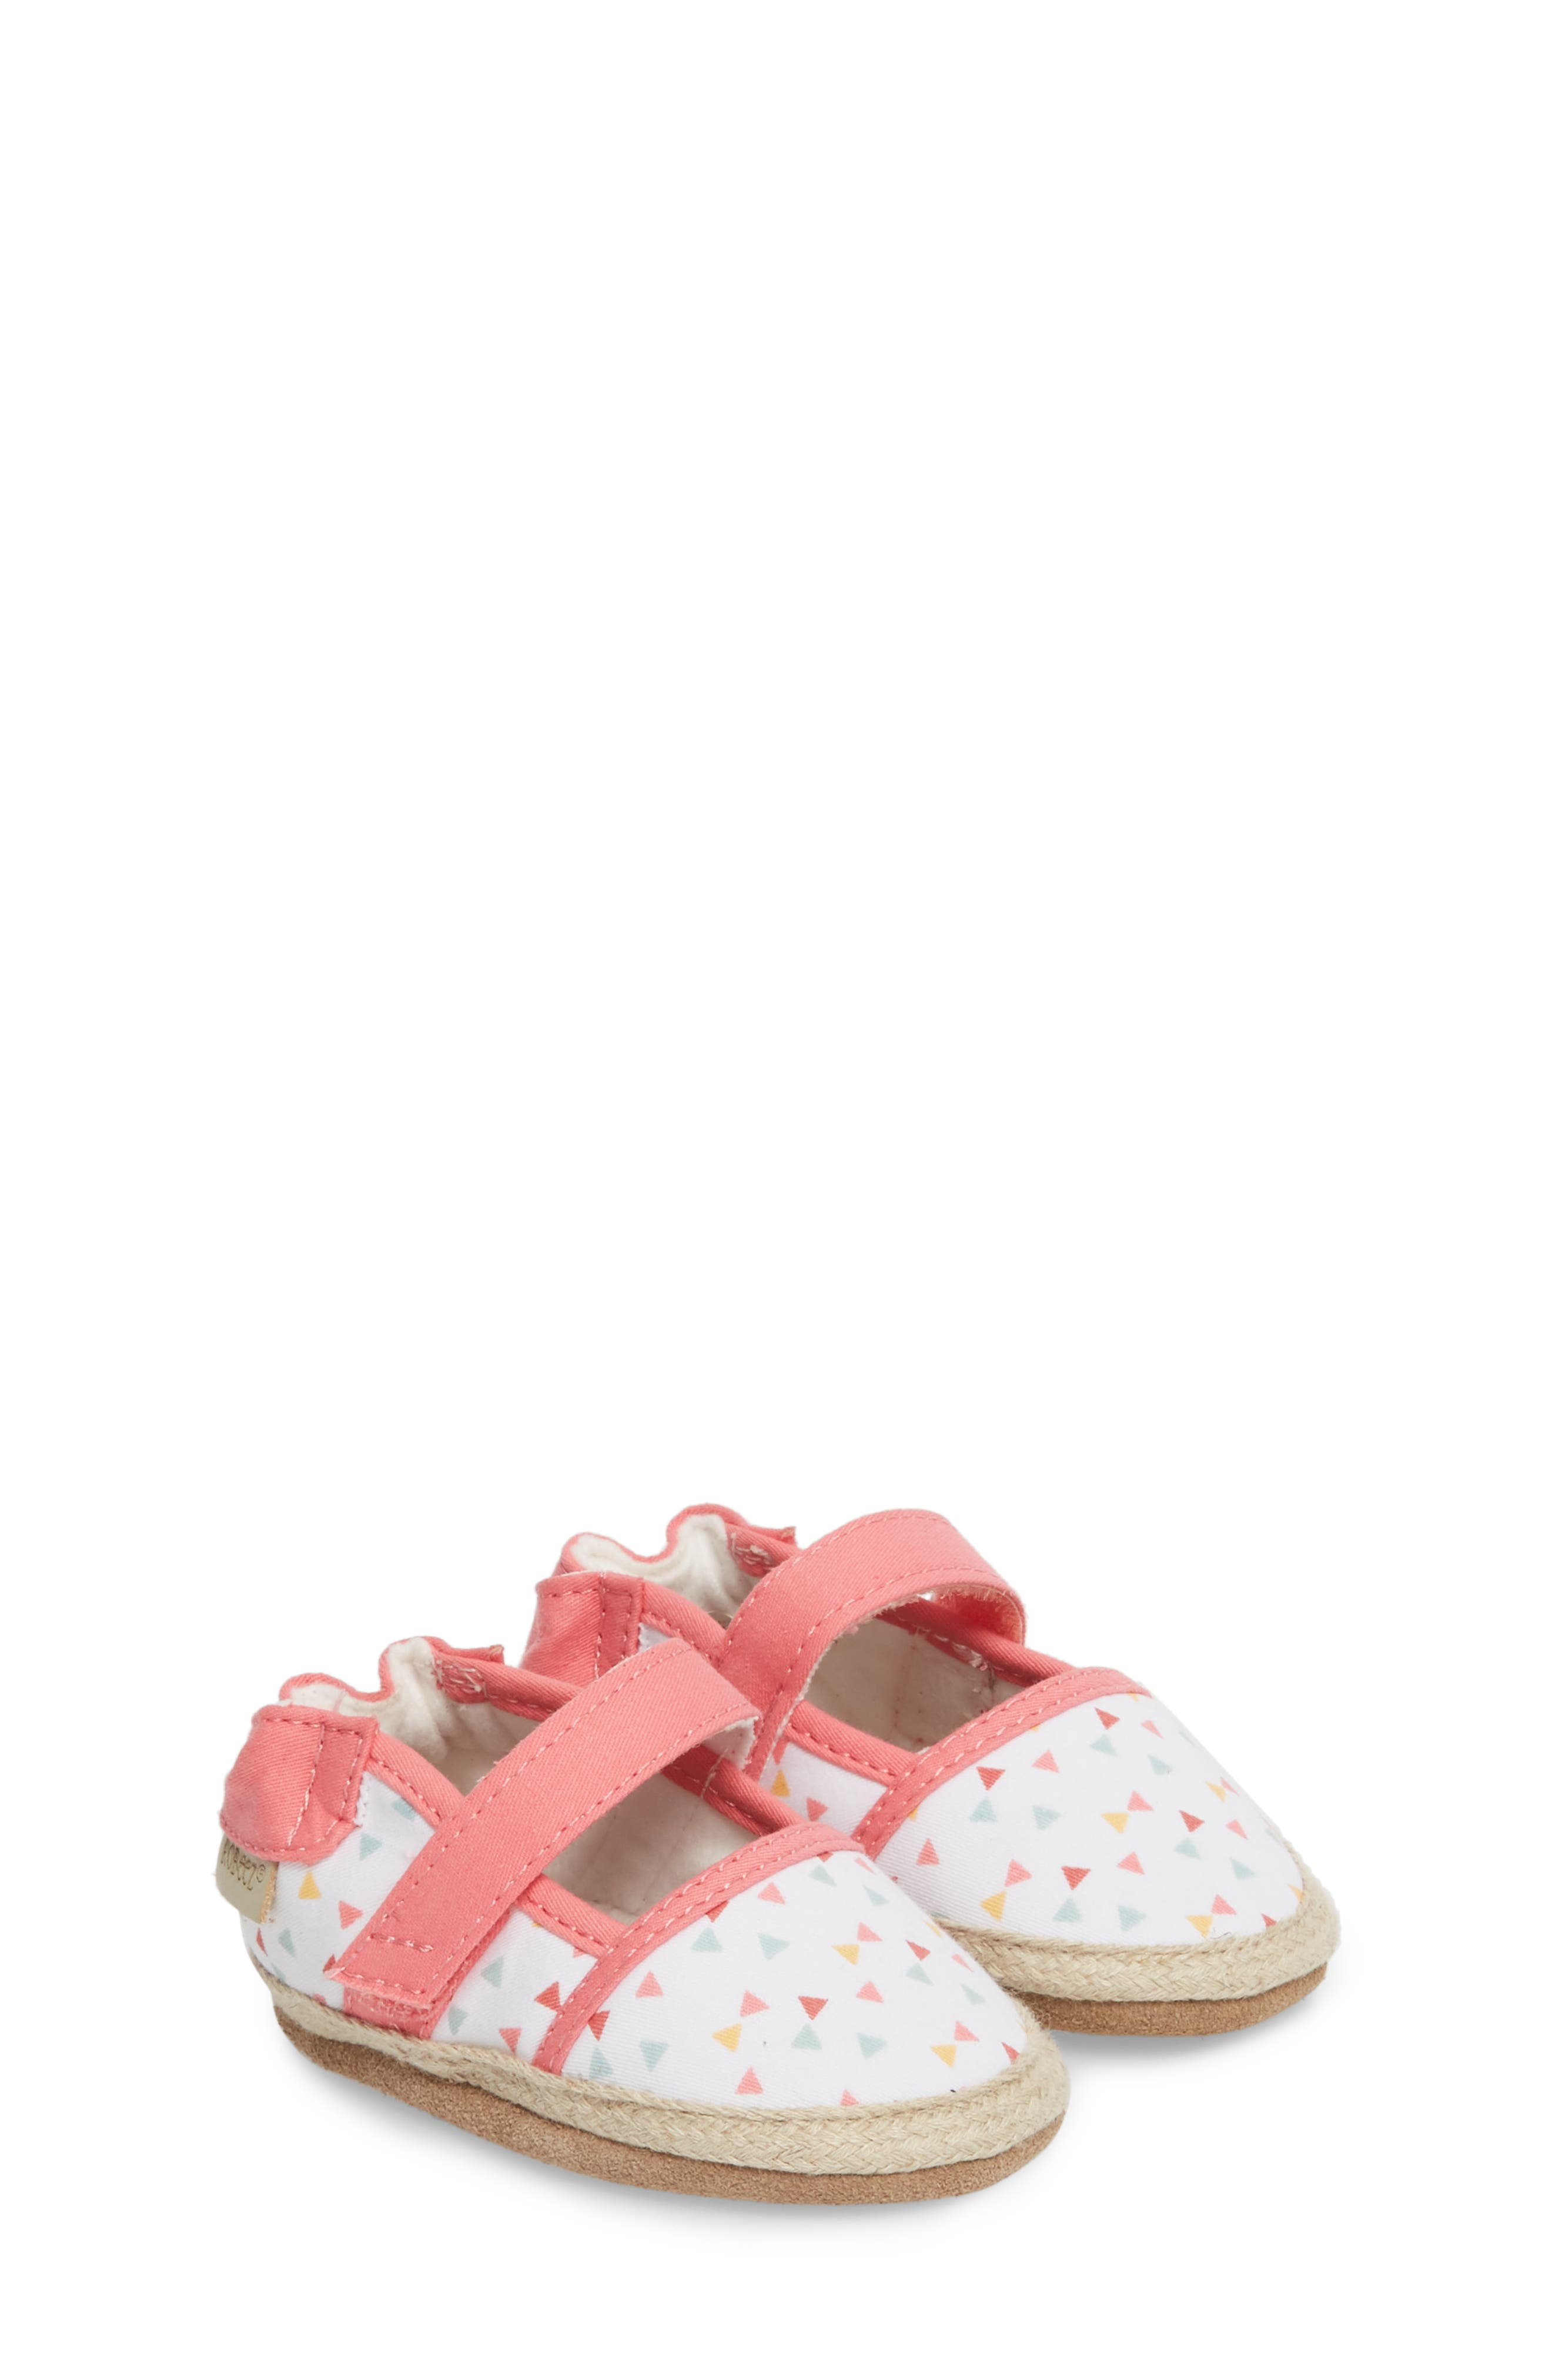 803287ce8ba9 Girls Robeez Shoes and Boots